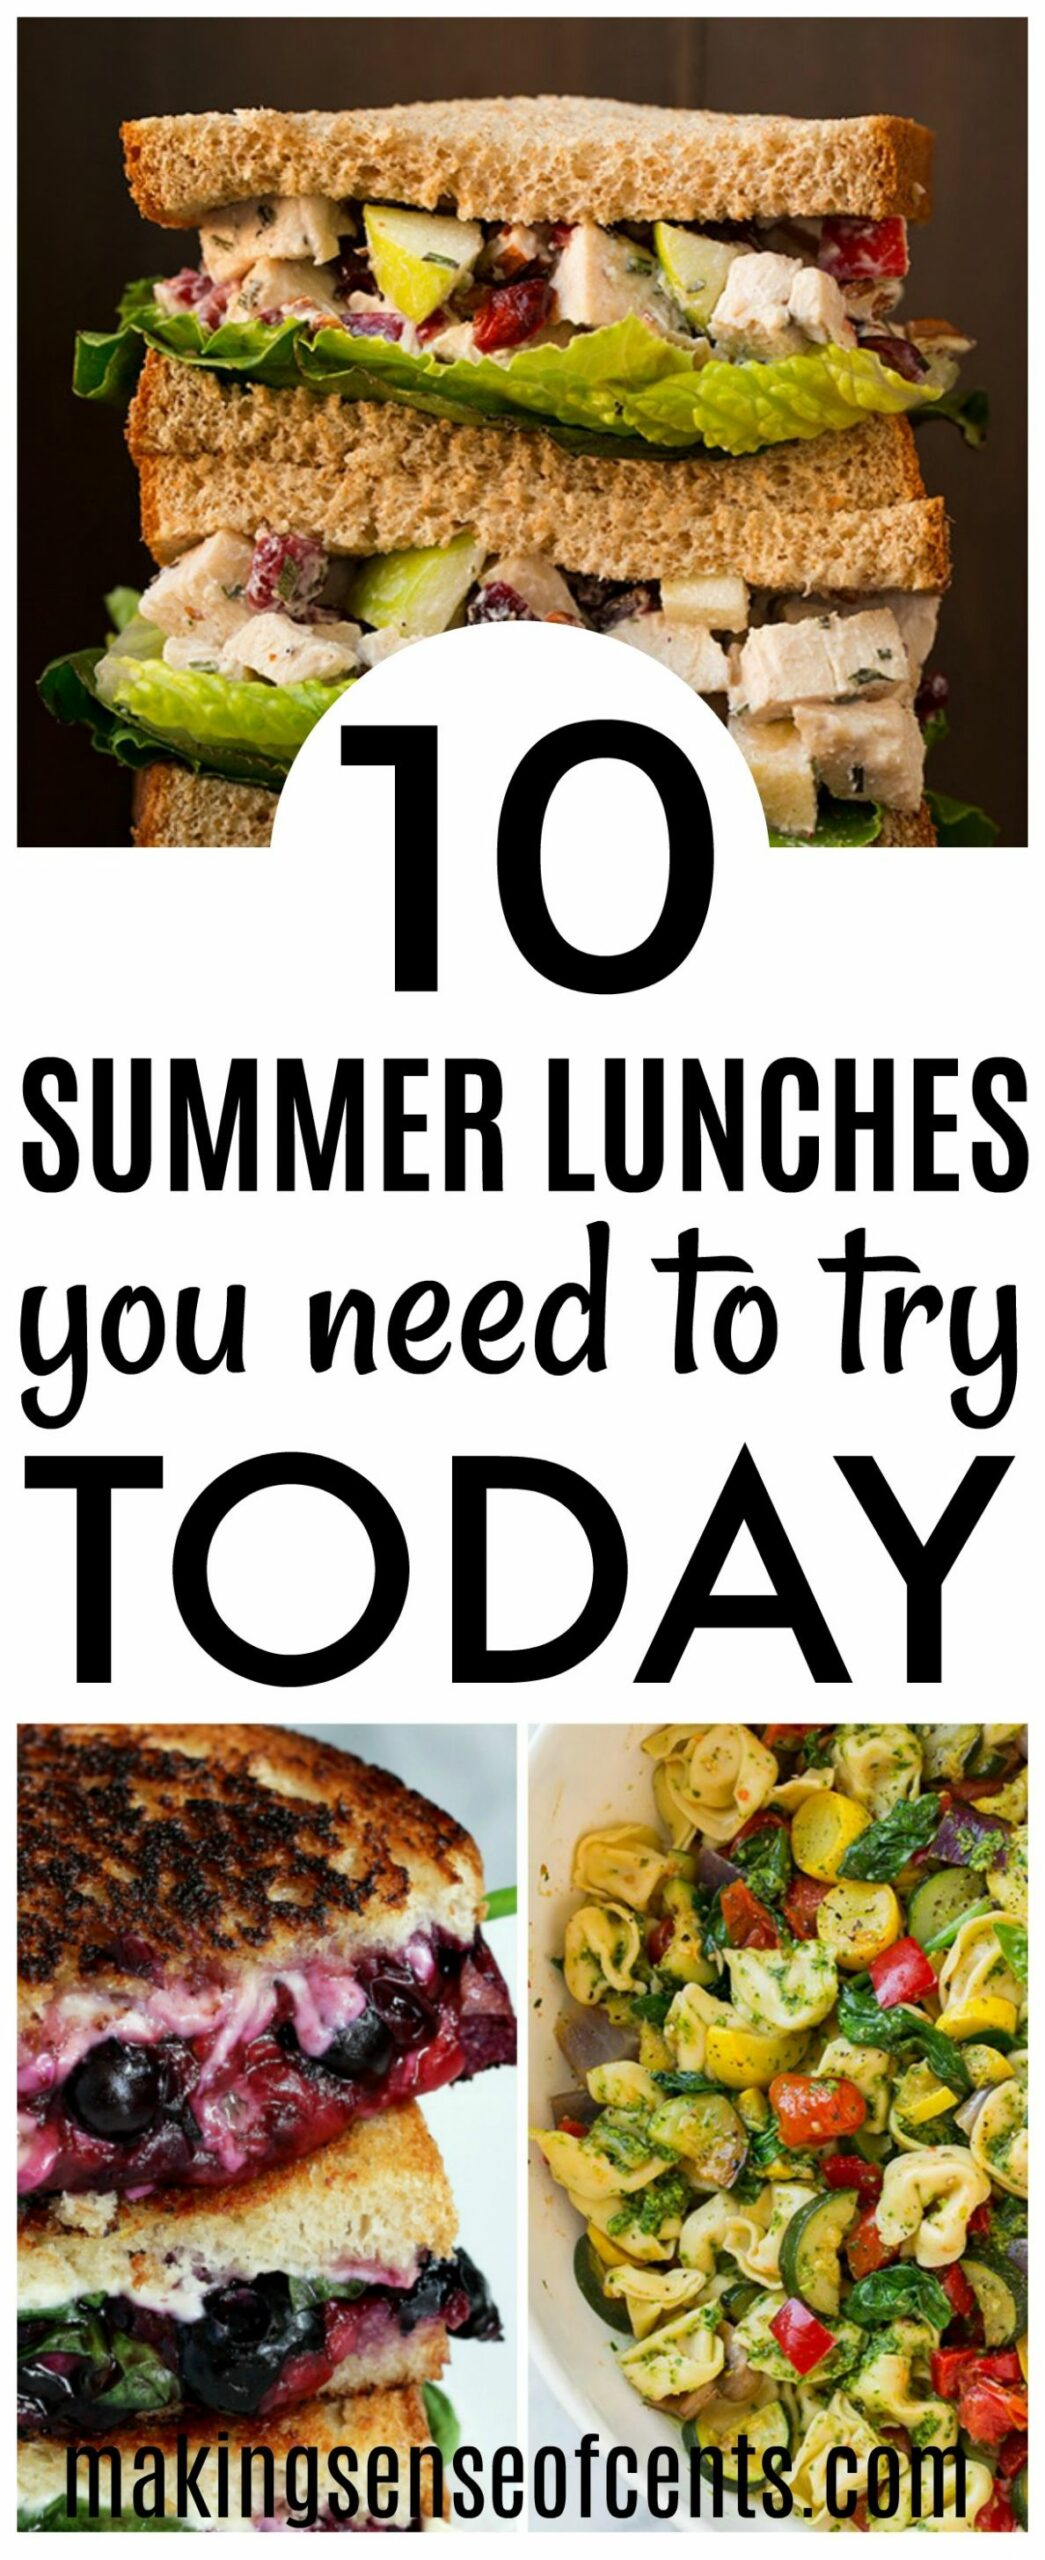 9 Delicious Summer Lunch Ideas - Summer Meals You Need To Make! - Summer Recipes Tasty